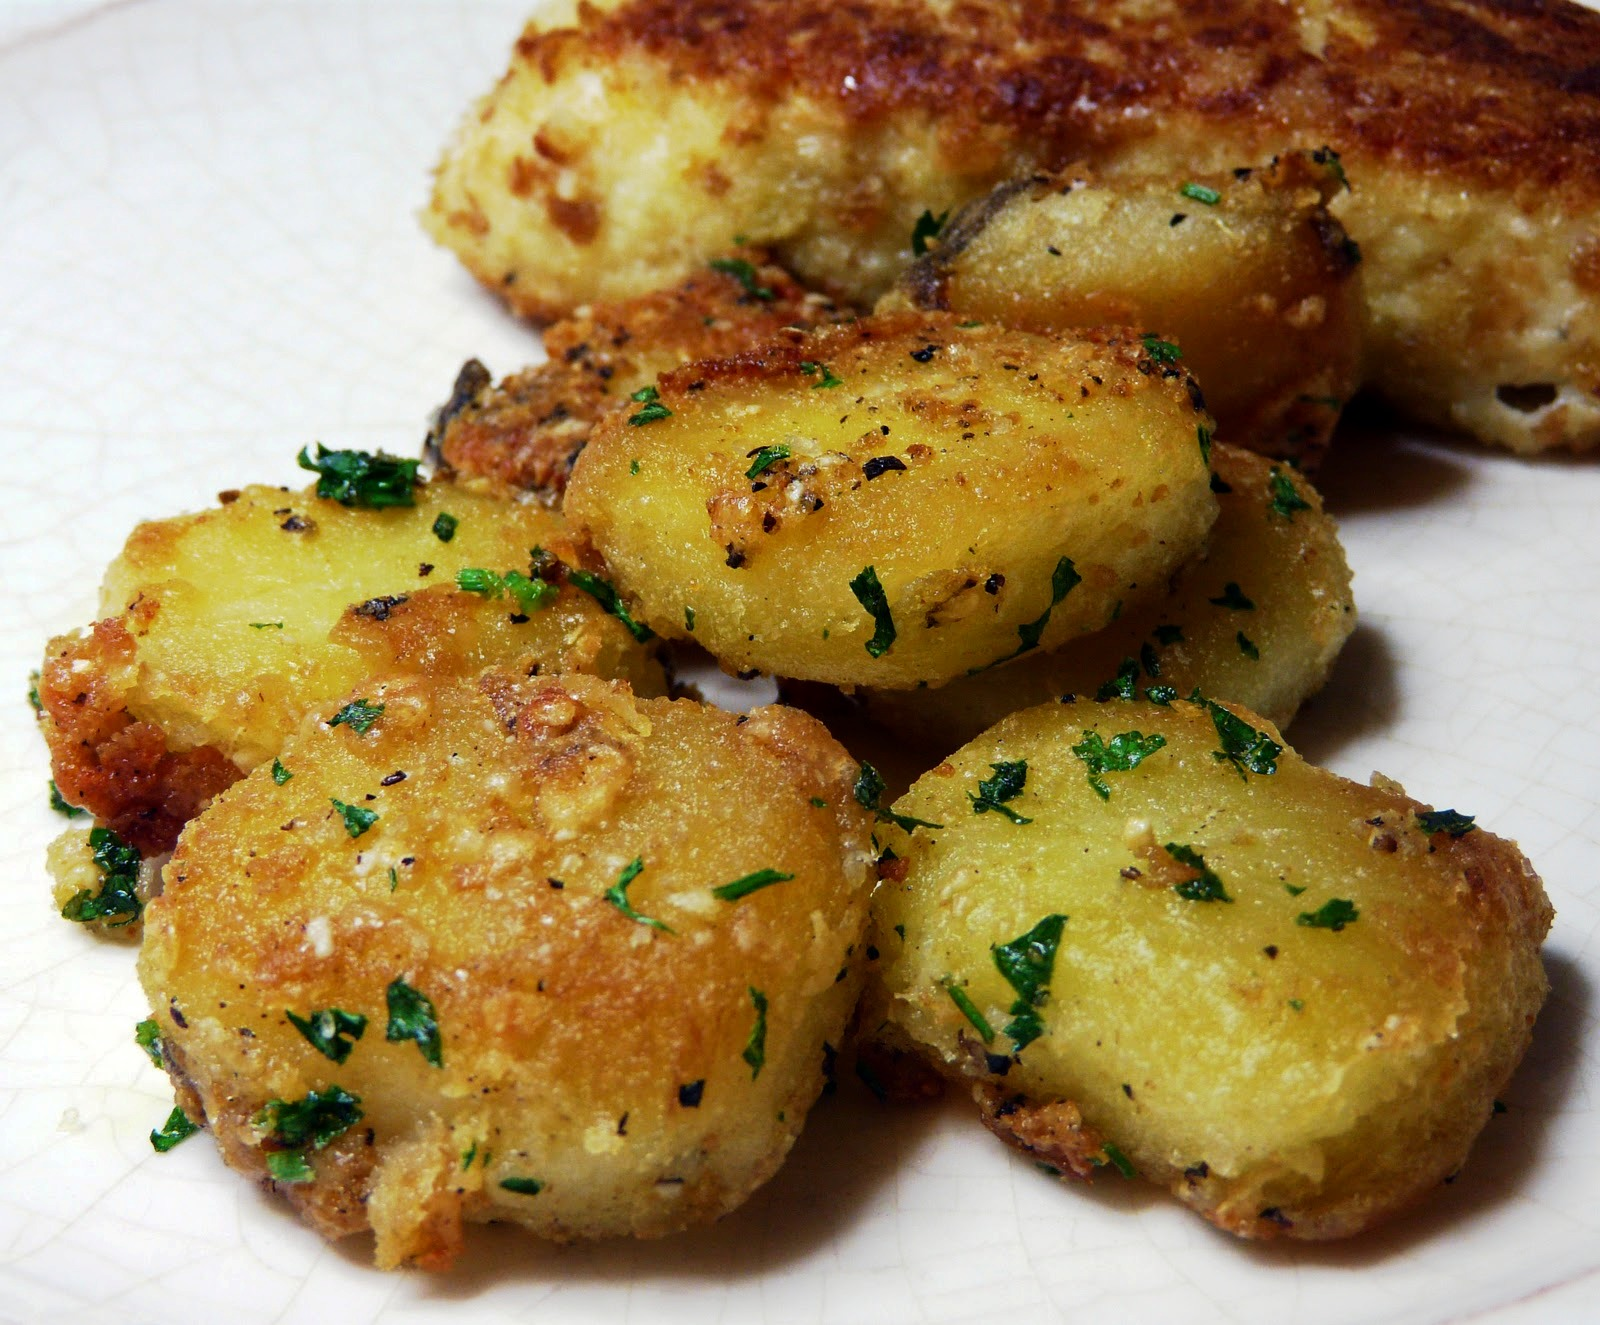 The Bestest Recipes Online: Parmesan Garlic Roasted Potatoes